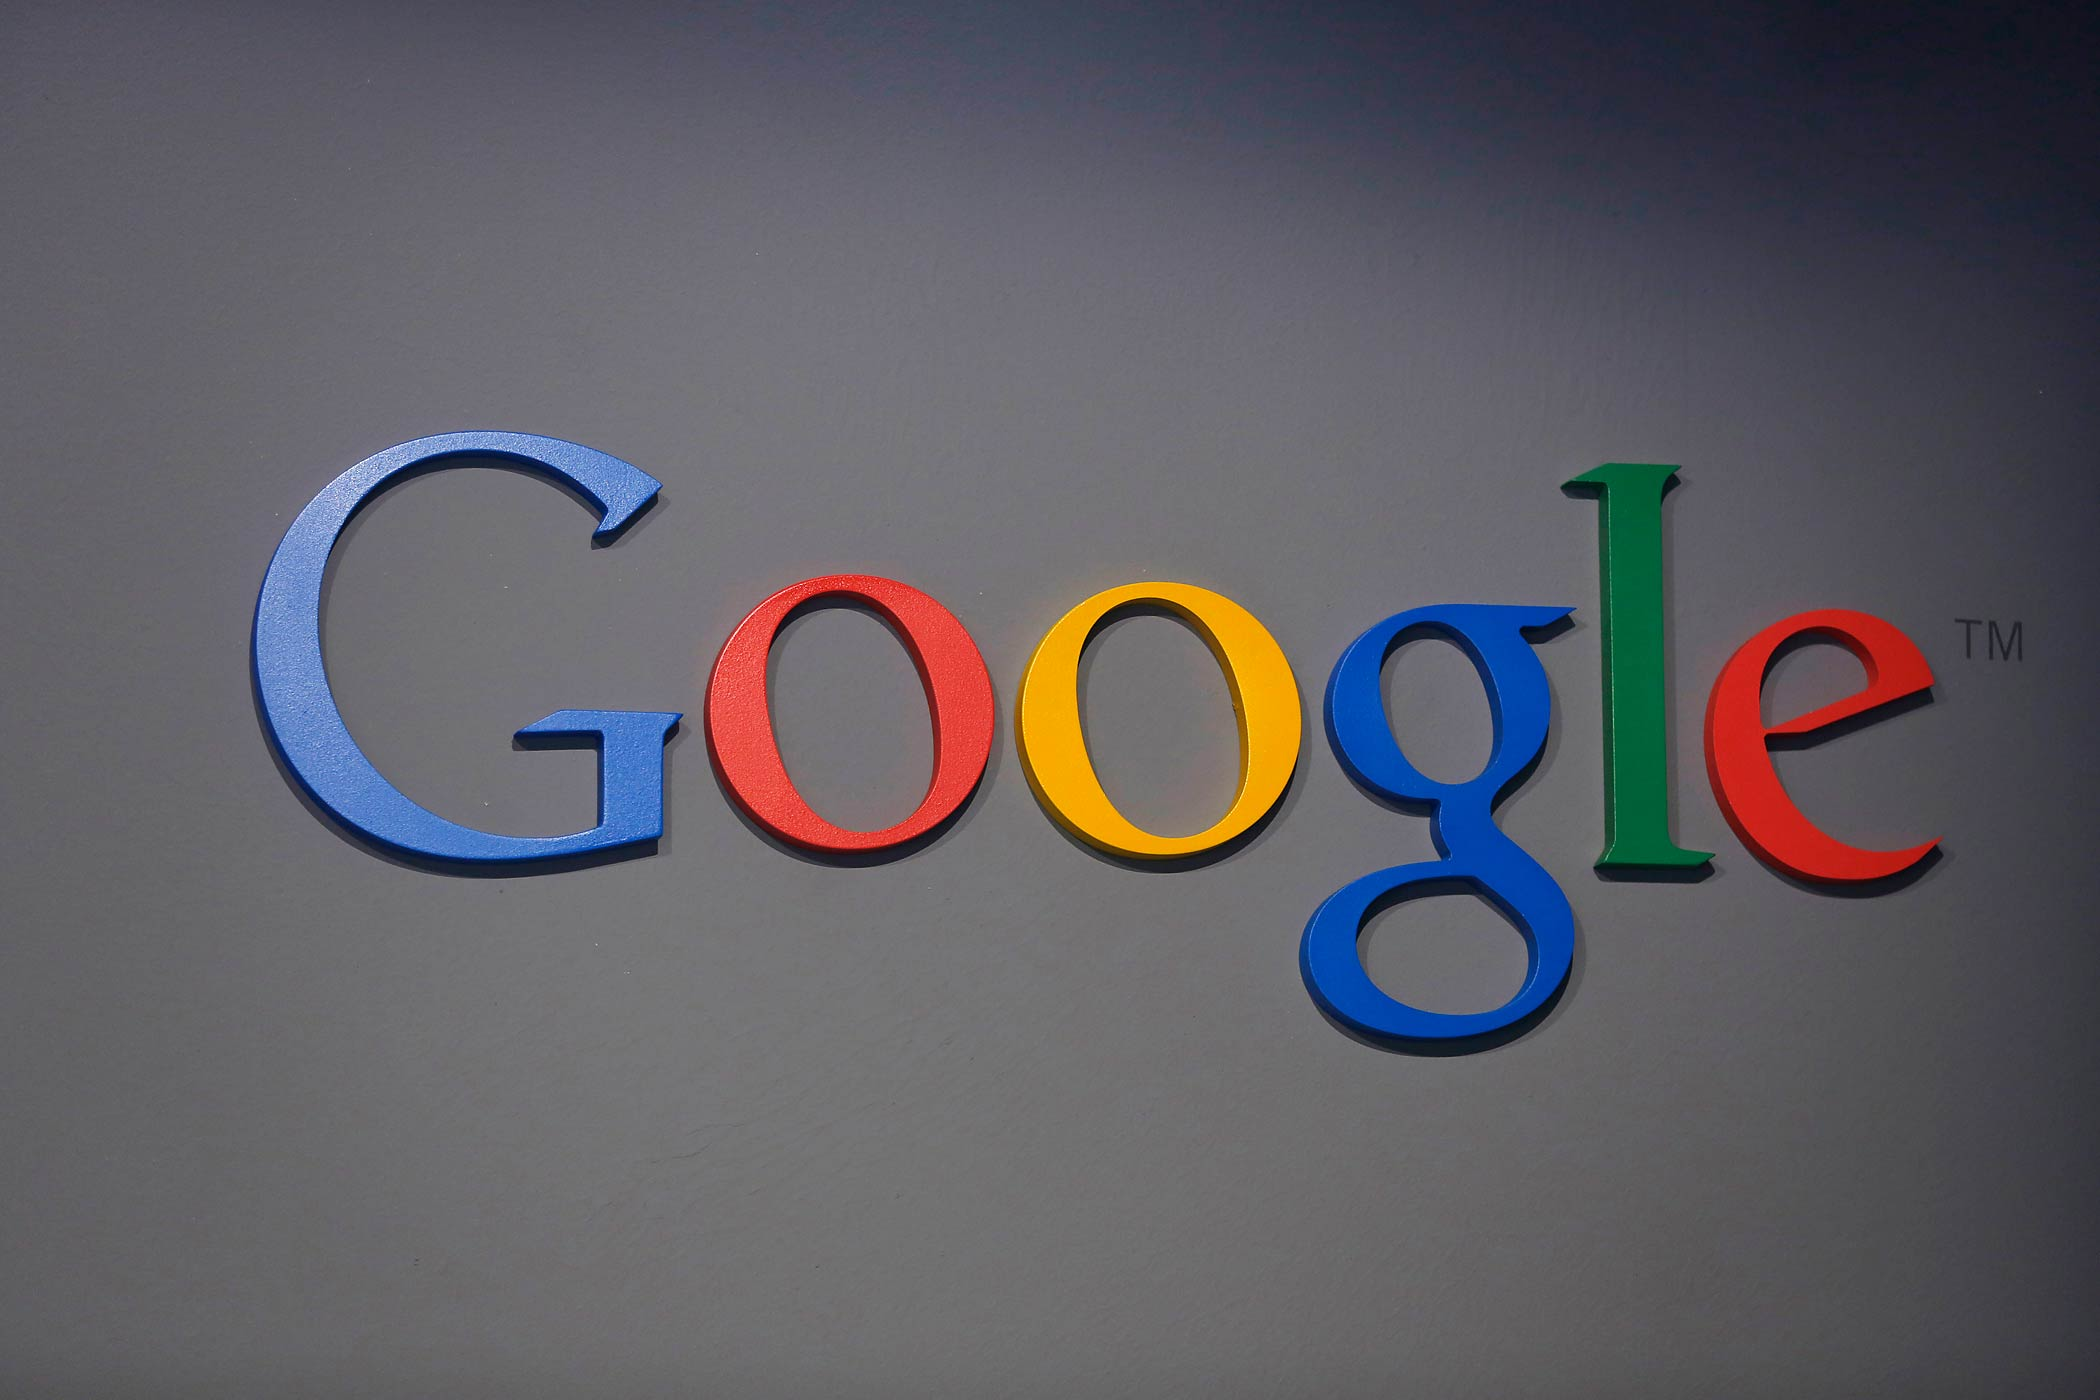 A Google logo is seen at the garage where the company was founded in Menlo Park, Calif., on Sept. 26, 2013.